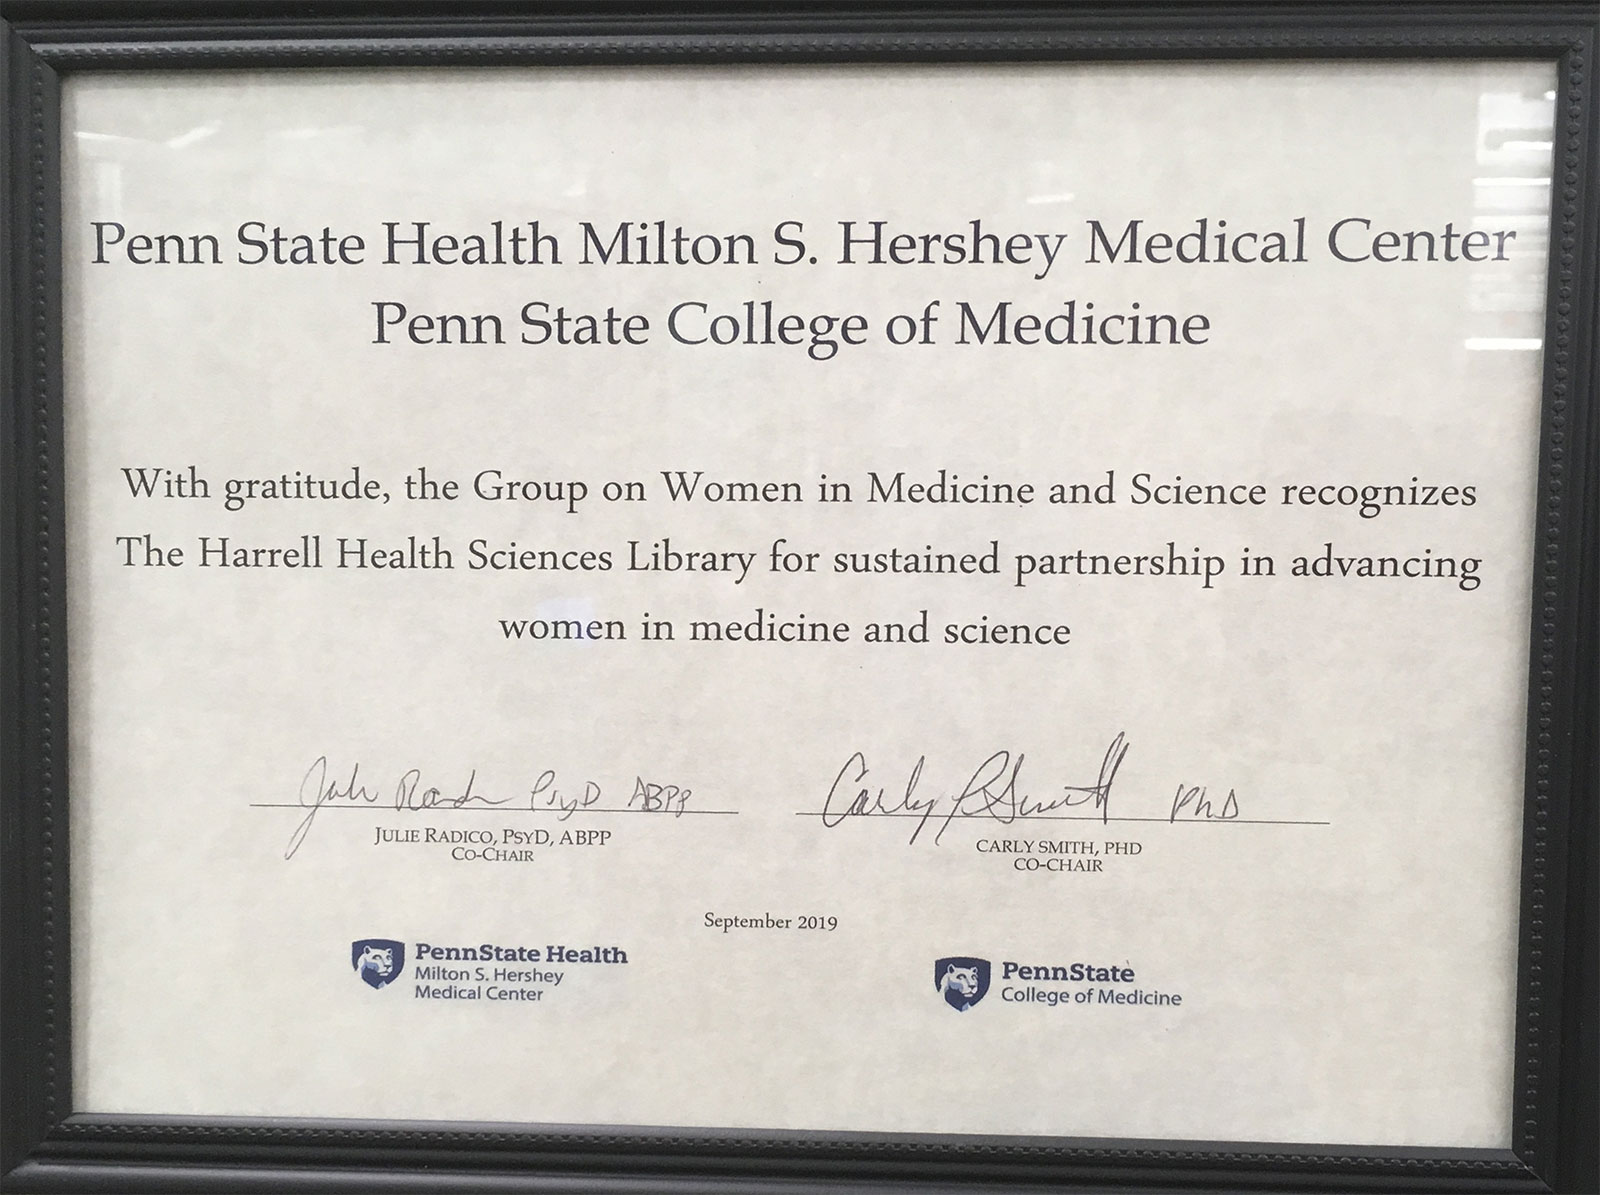 A framed certificate honoring Harrell Health Sciences Library is seen signed by leaders of the Group on Women in Medicine and Science.